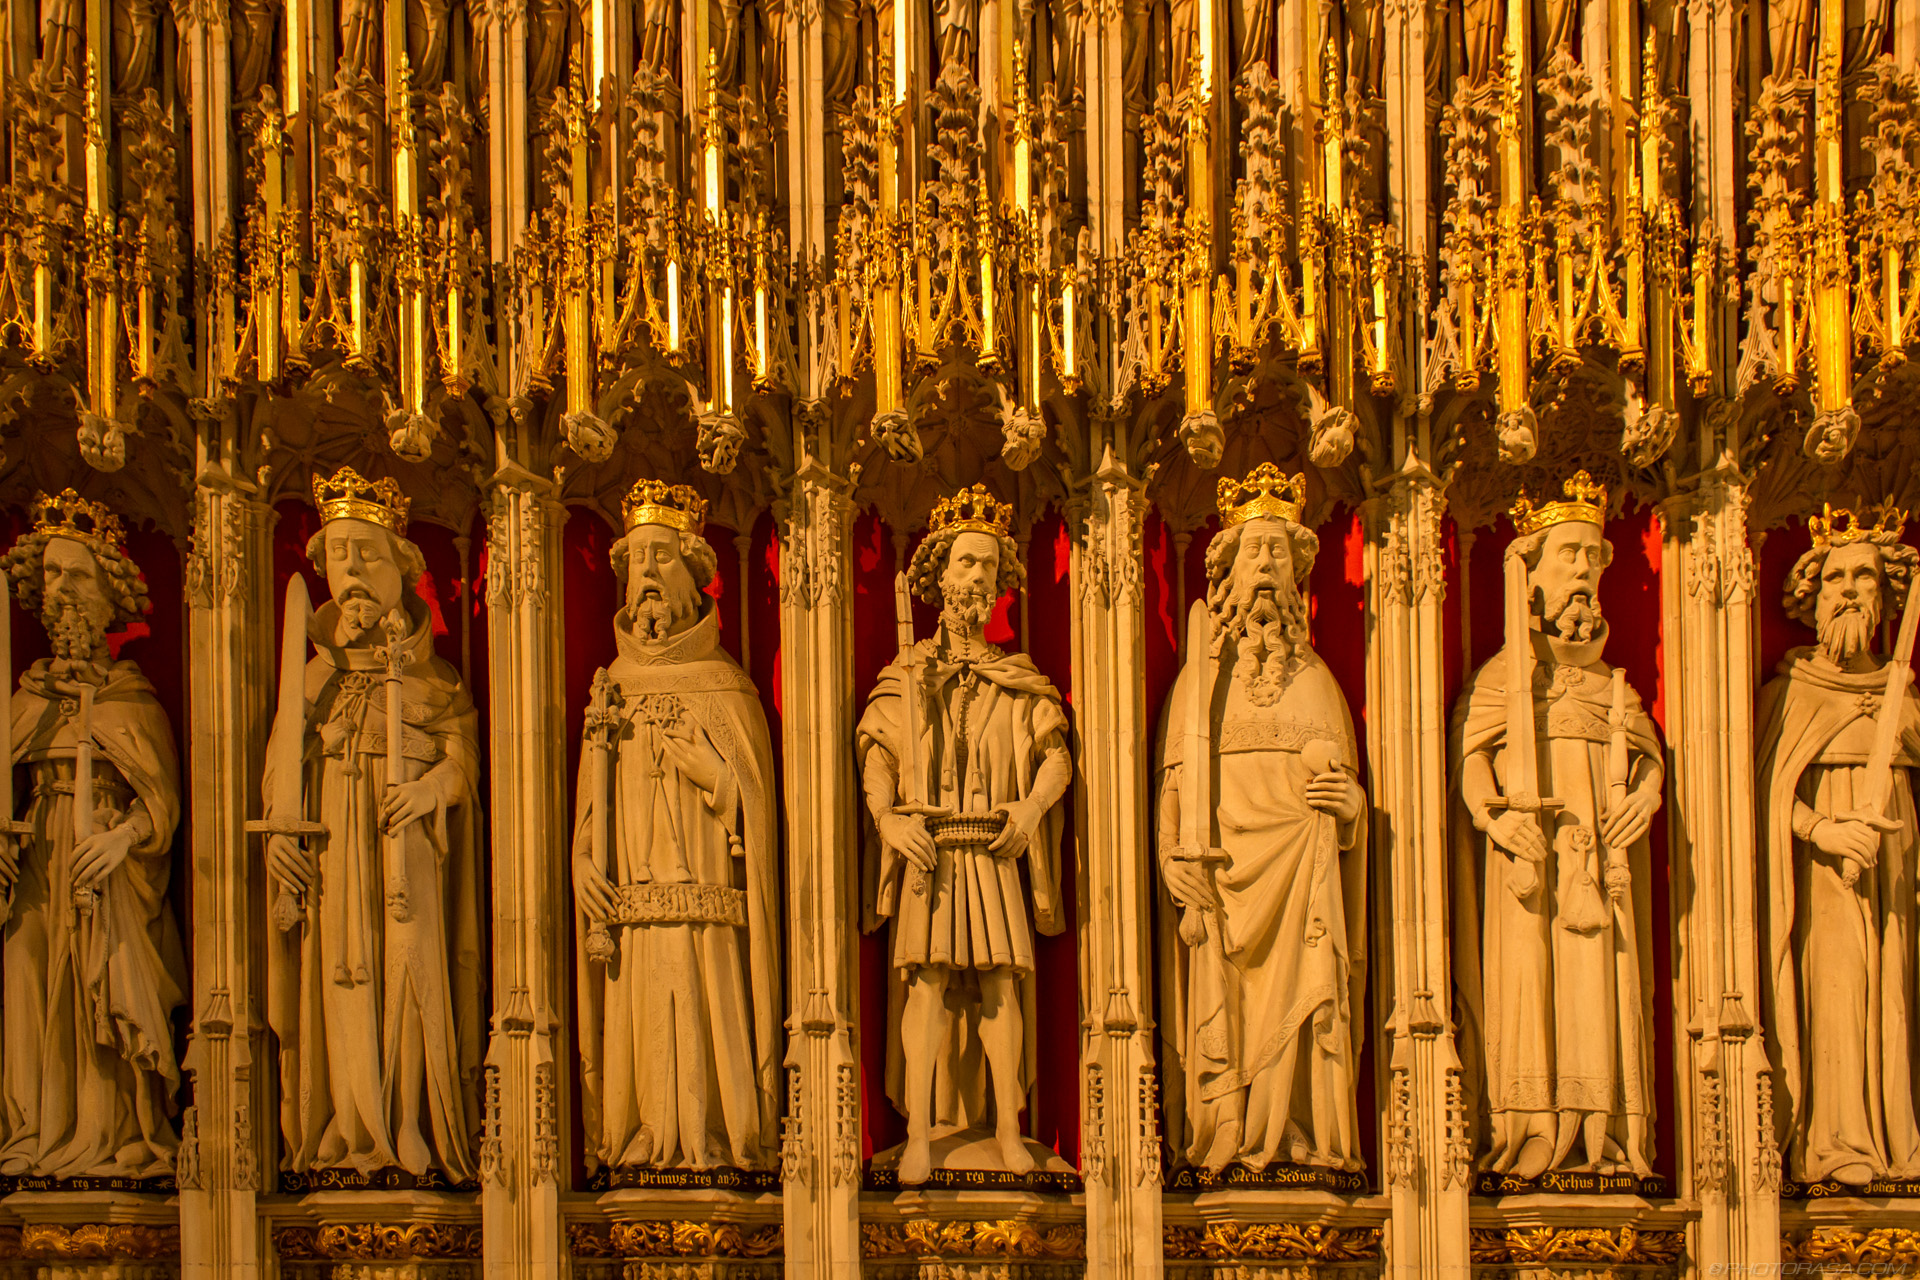 https://photorasa.com/yorkminster-cathedral/kings-screen-decorative-stone-figures/